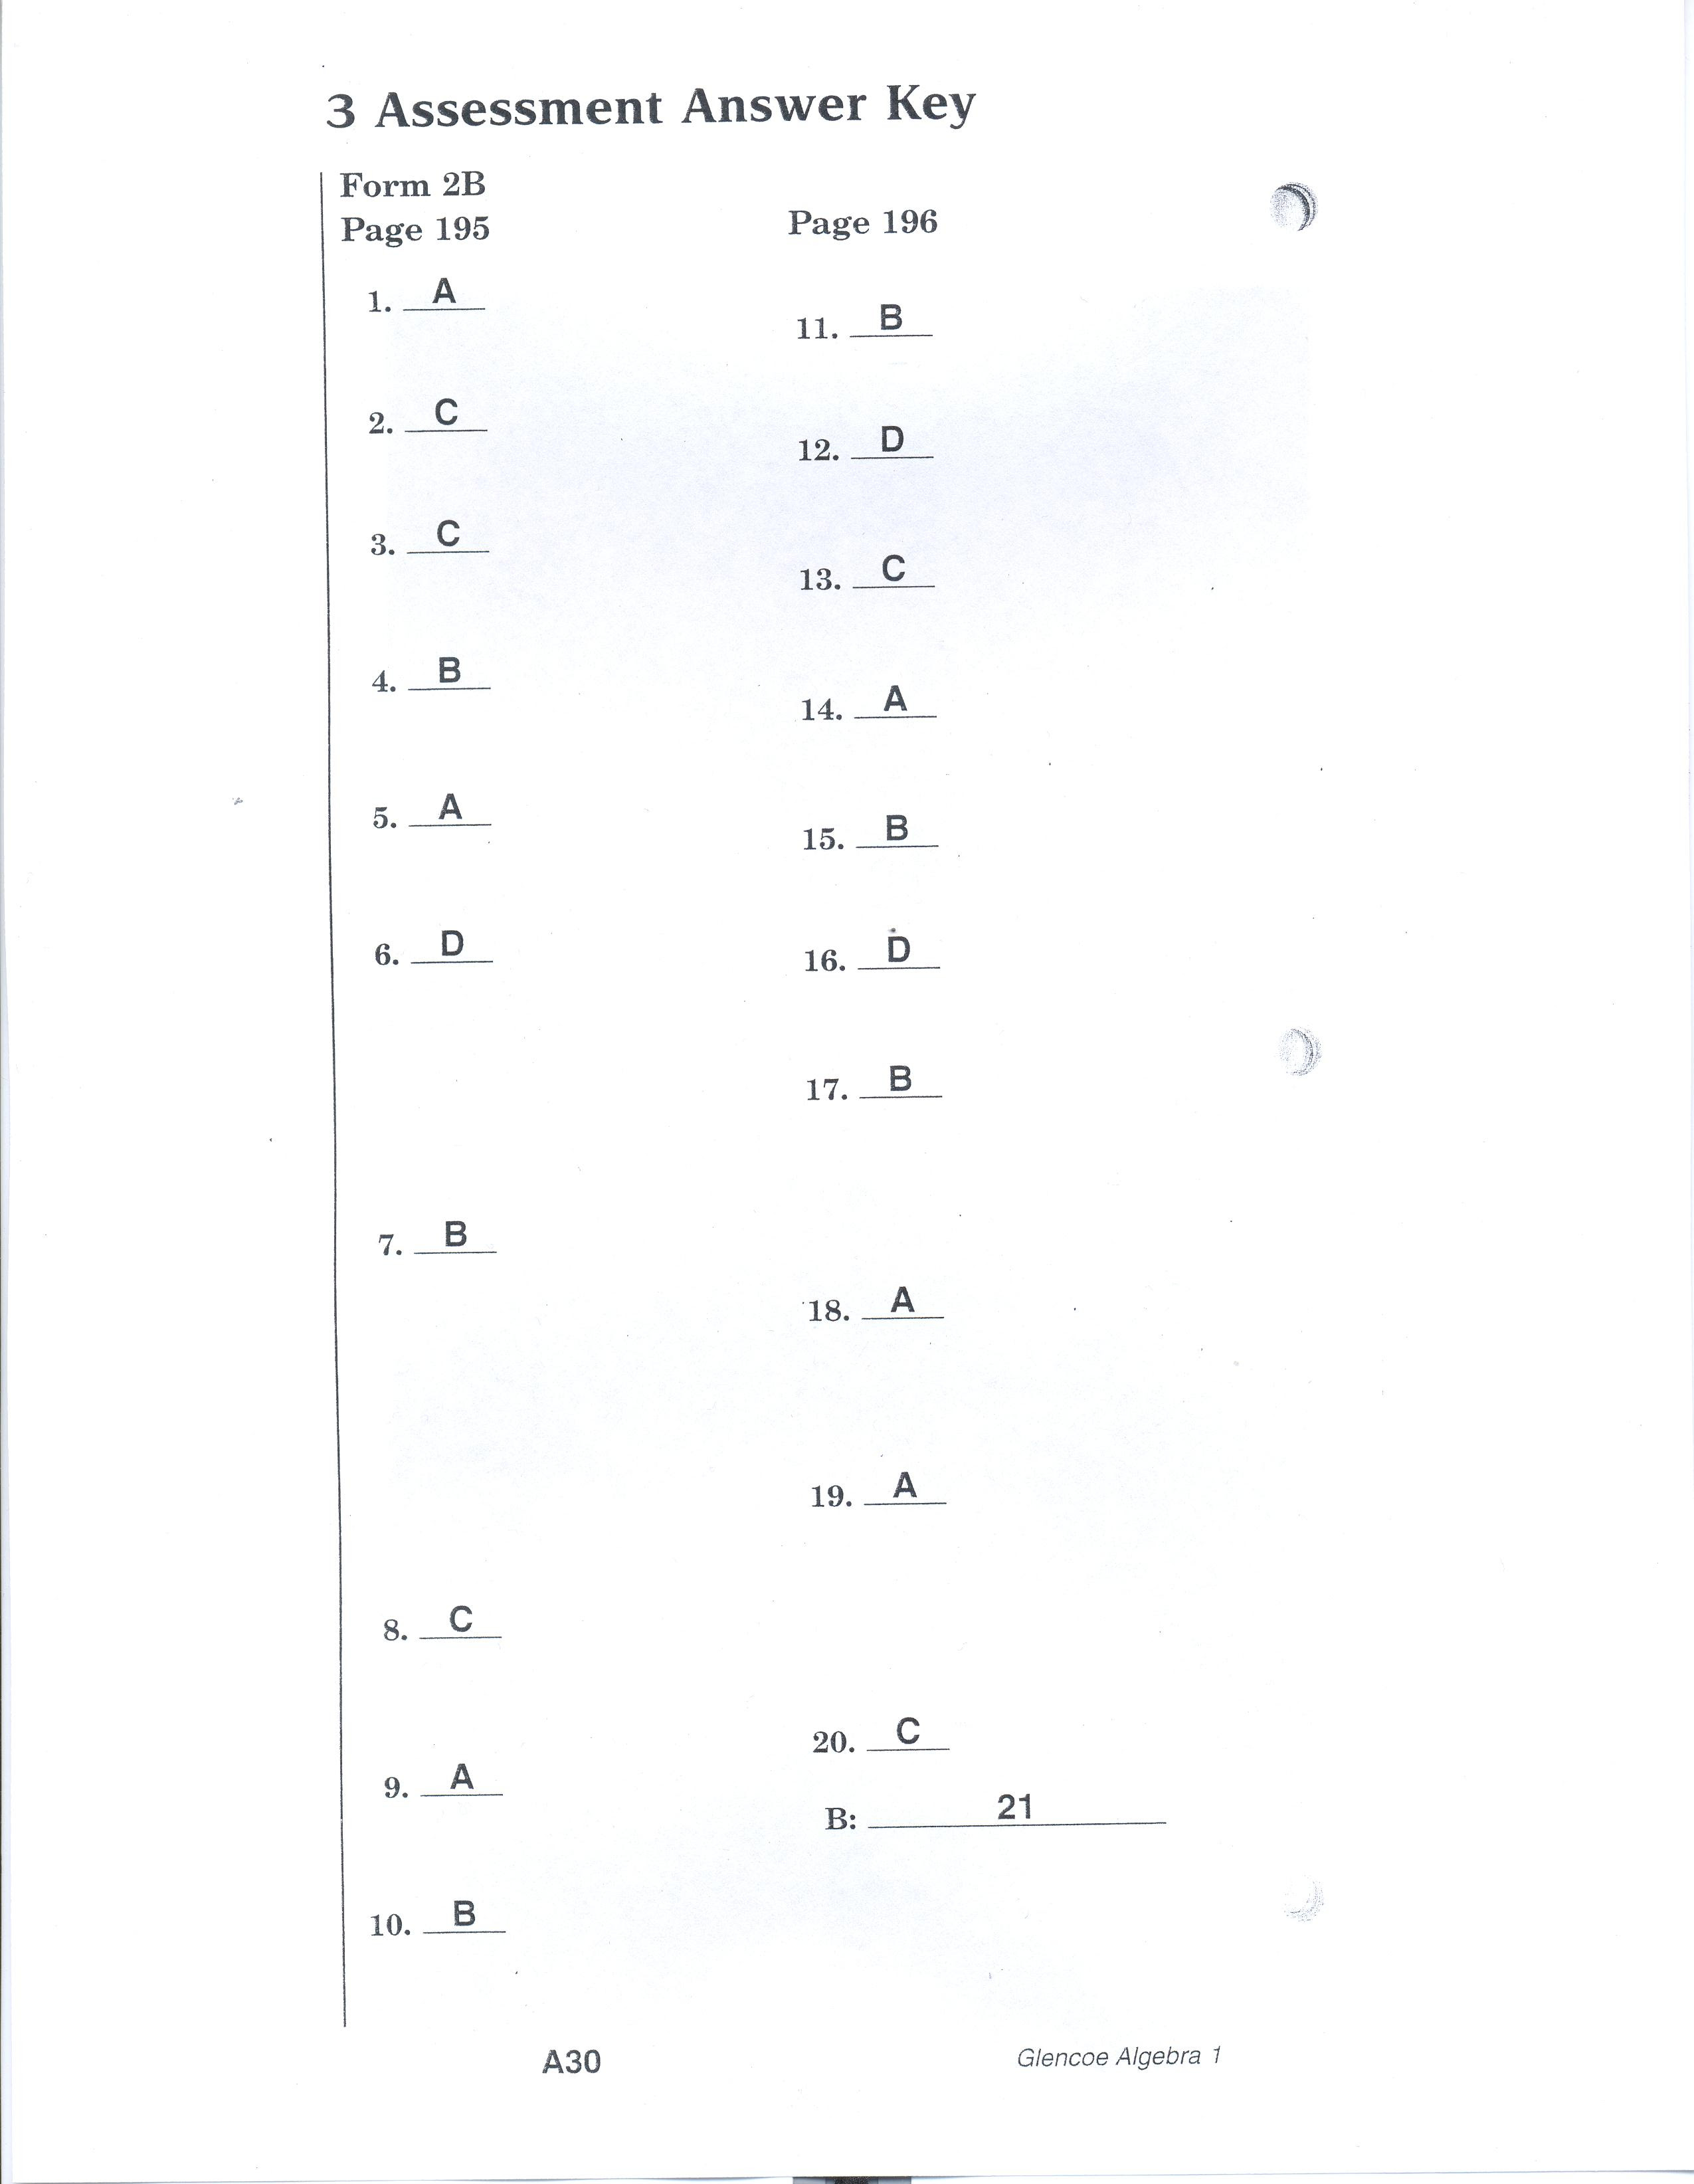 81 CHAPTER 3 TEST FORM 2B ANSWERS - * Form